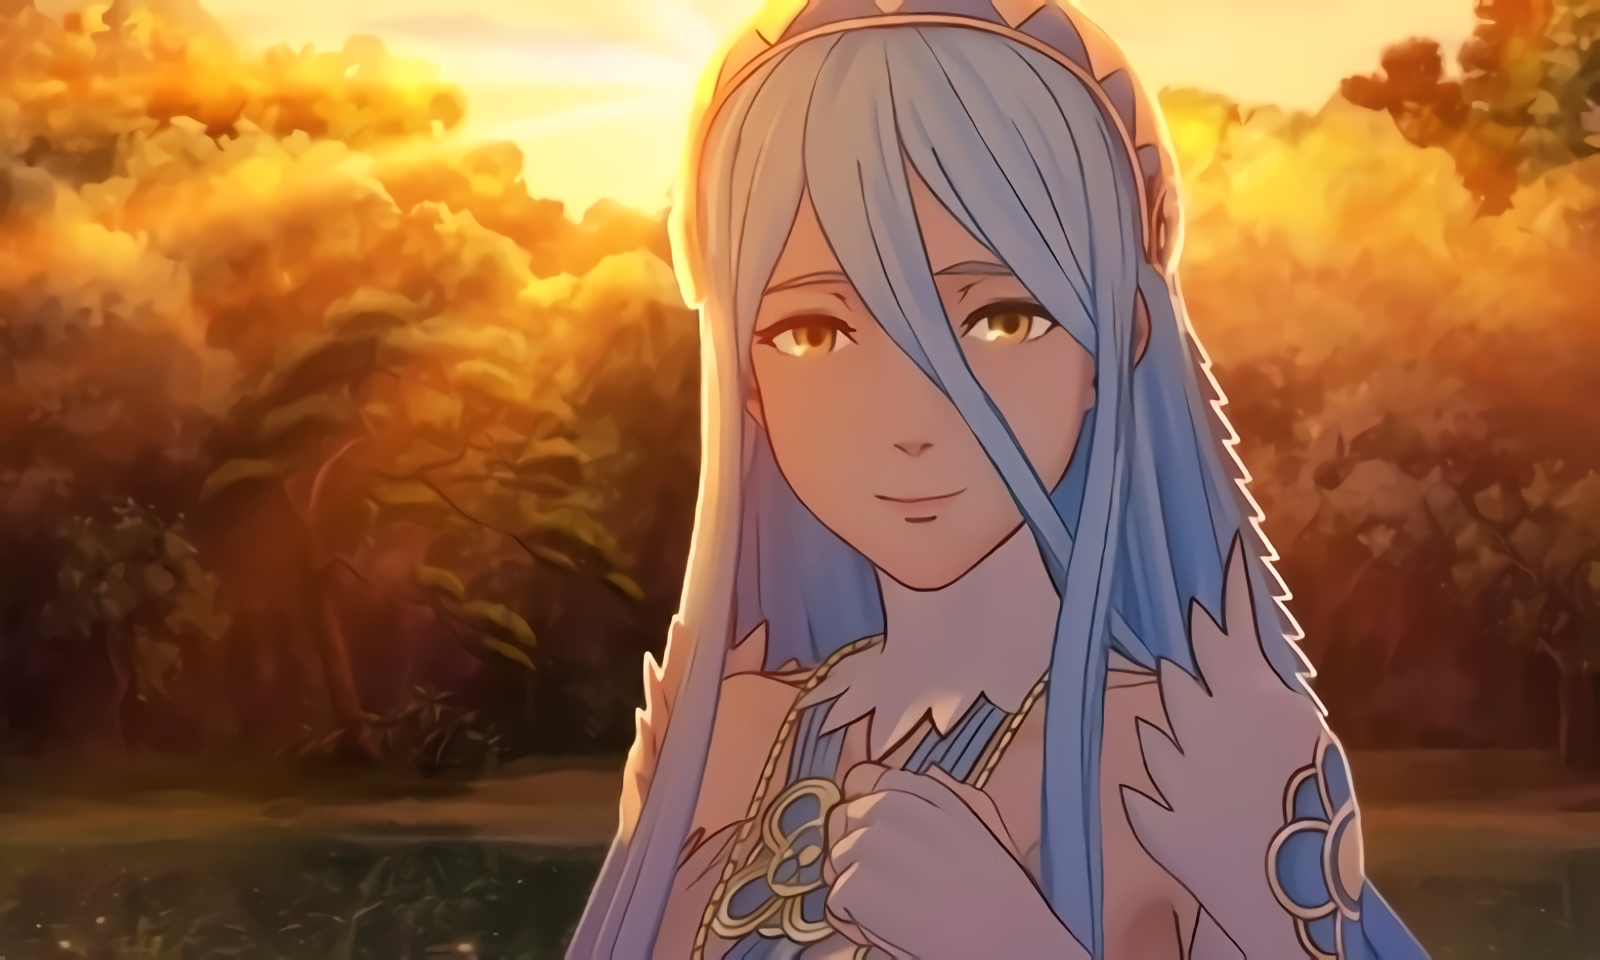 Fire Emblem Fates Revelation Azura Wallpaper By Kaz Kirigiri On